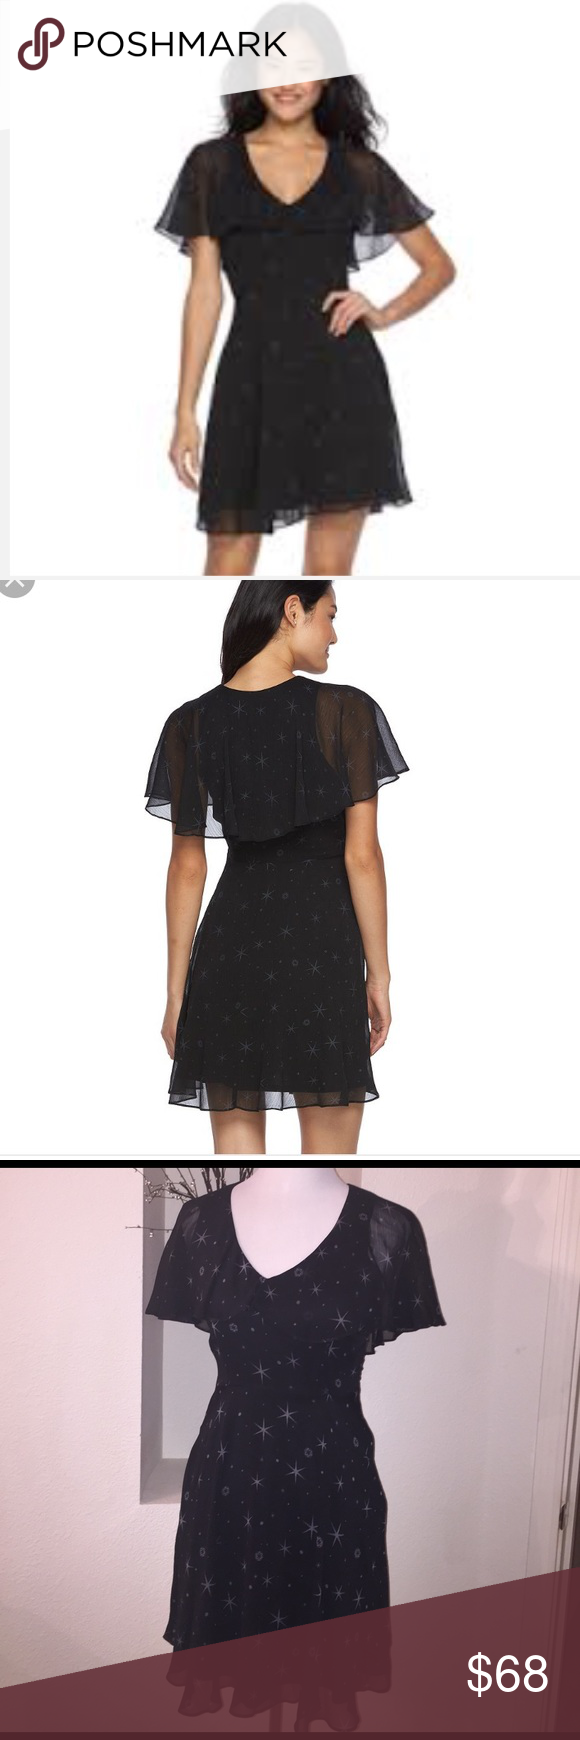 Star Wars Rogue One Dress Inspired by Rogue One: A Star Wars Story. Printed Dress features a v-neck, short flutter sleeves, a side zipper, and an allover graphic print than includes stars and the Imperial symbol. Star Wars Dresses